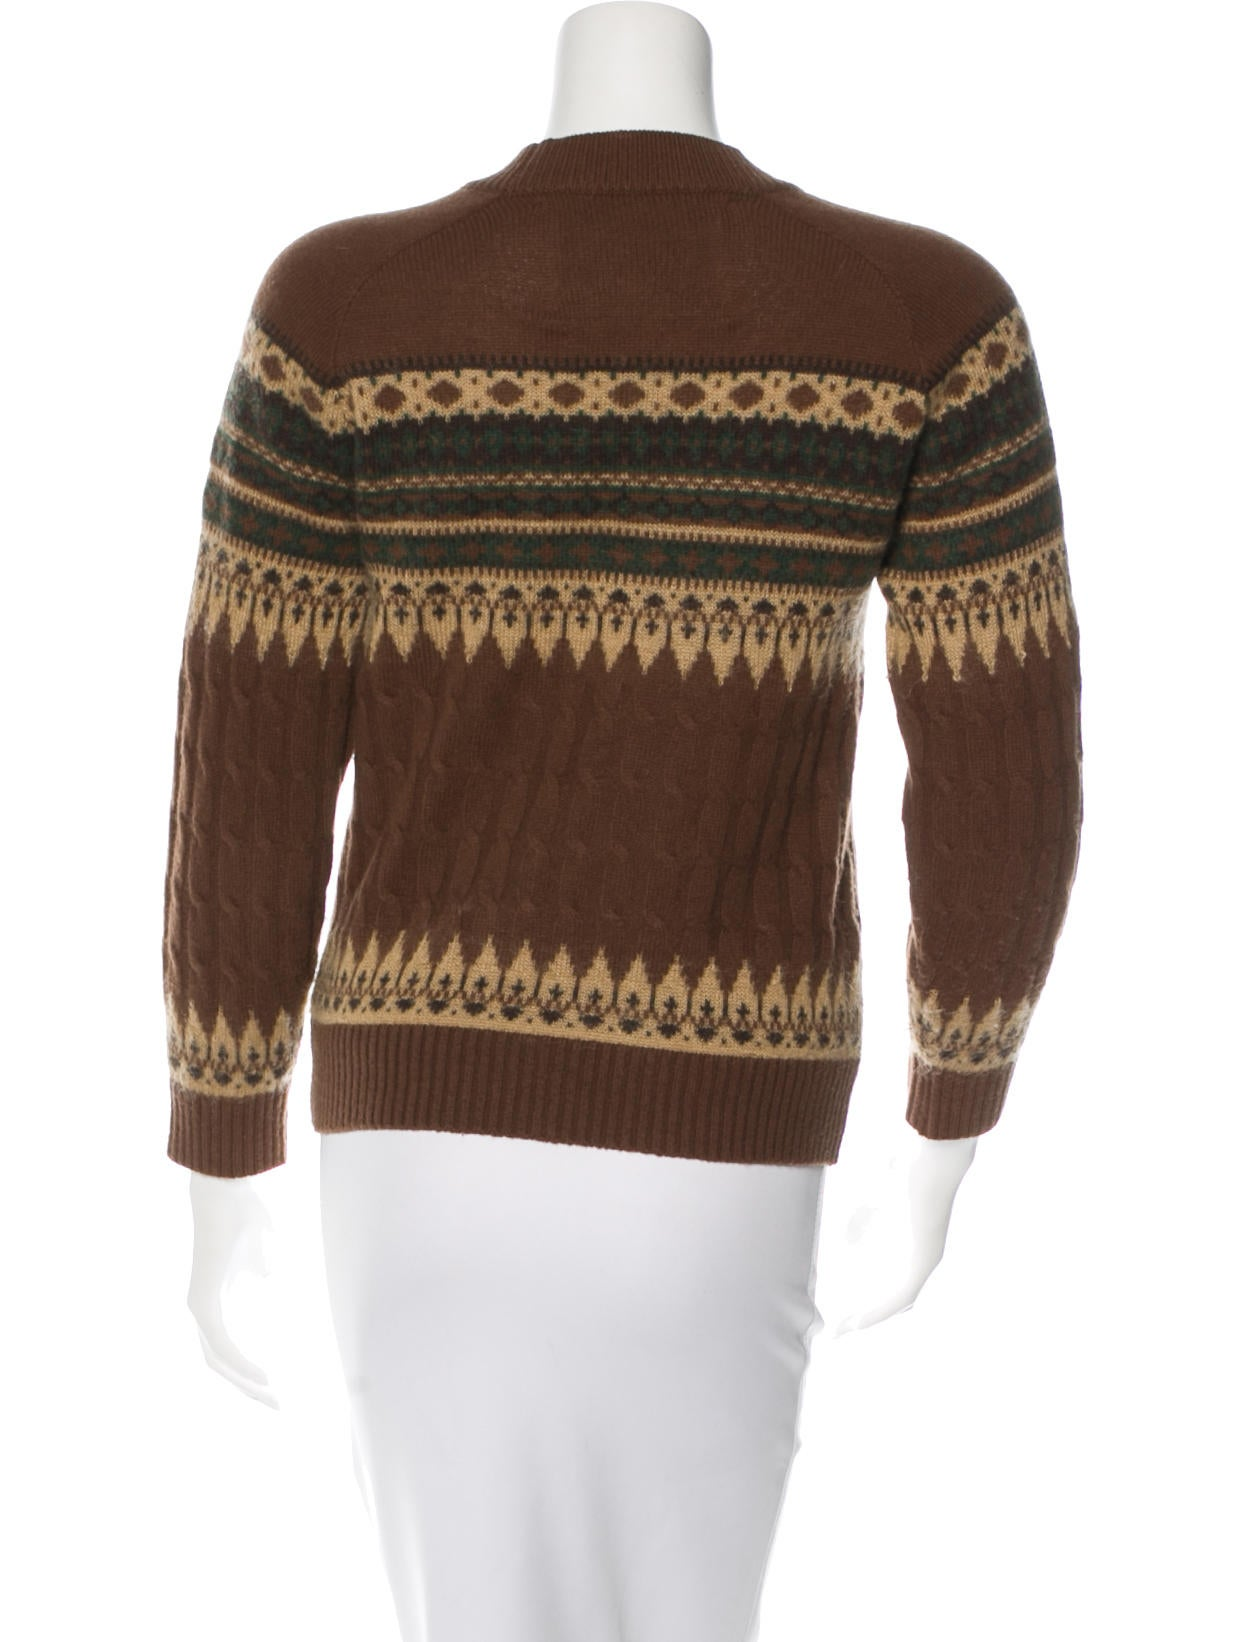 Cosmic wonder light source patterned wool sweater for Cosmic pattern clothing